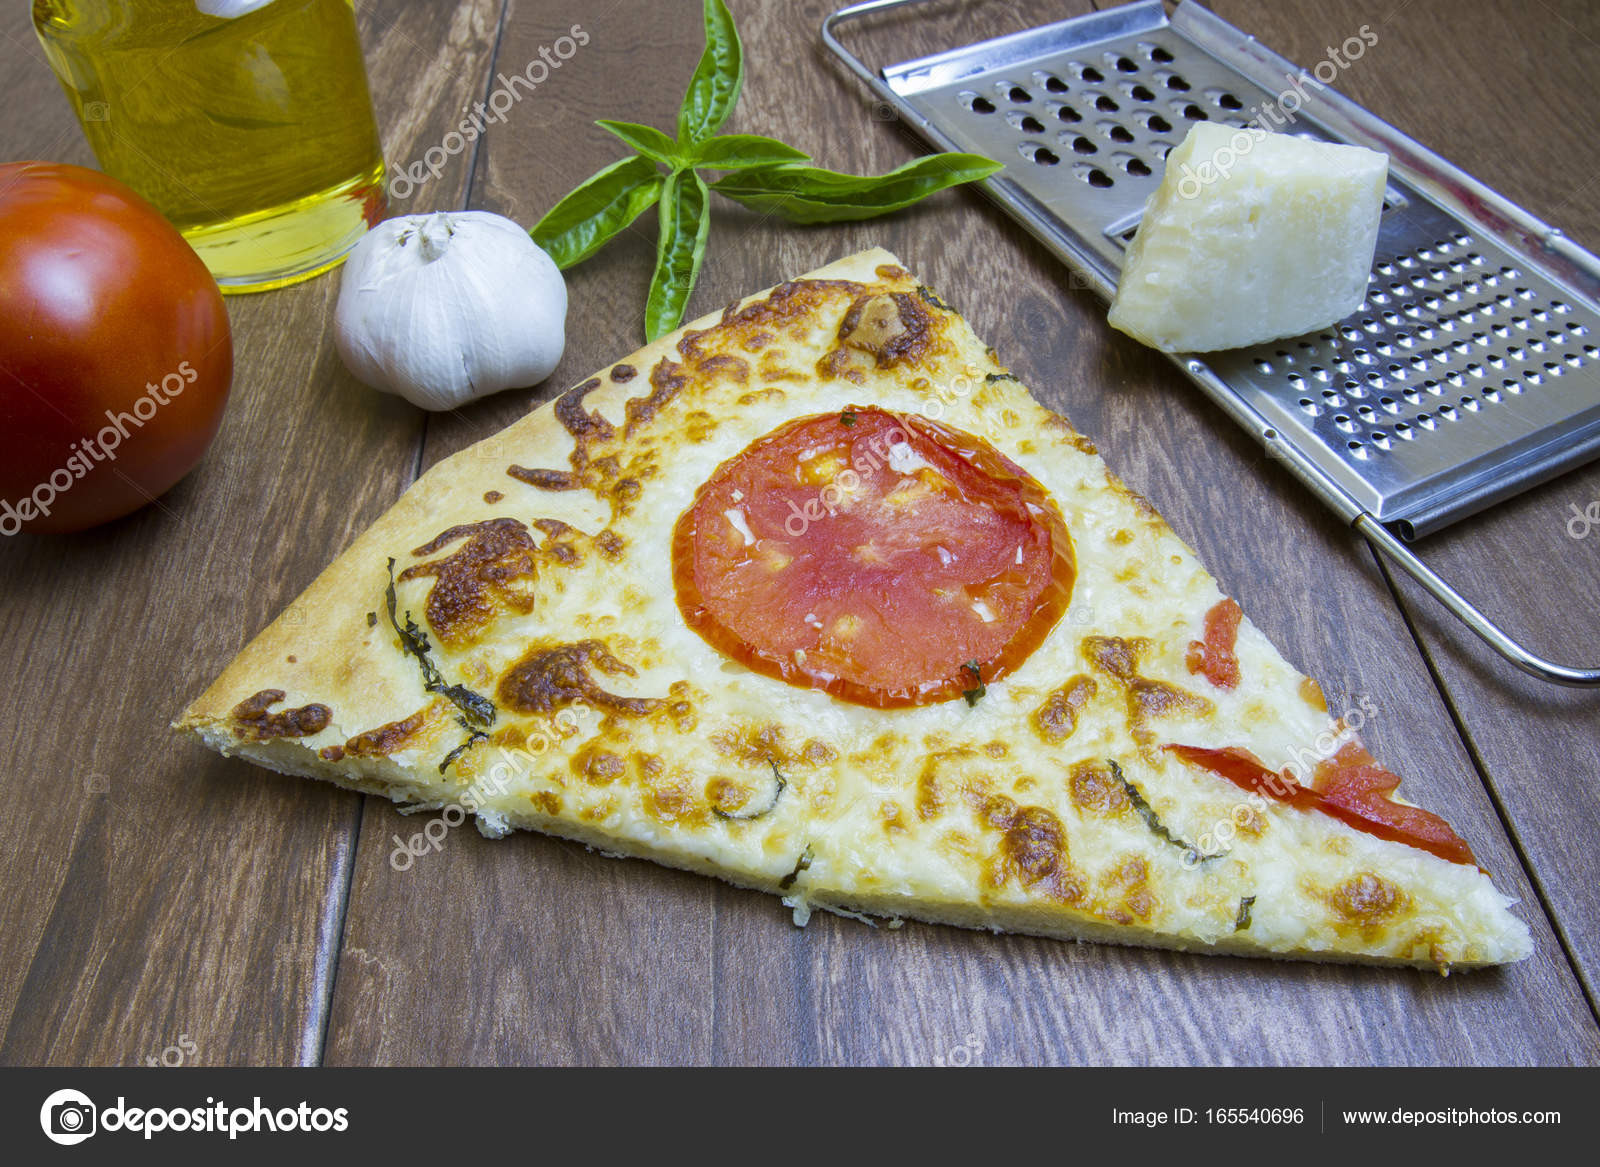 Fresh Basil Whole Ripe Tomato Olive Oil And Cheese With Baked Margarita Pizza Slice On Kitchen Tile Photo By Karenfoleyphotography